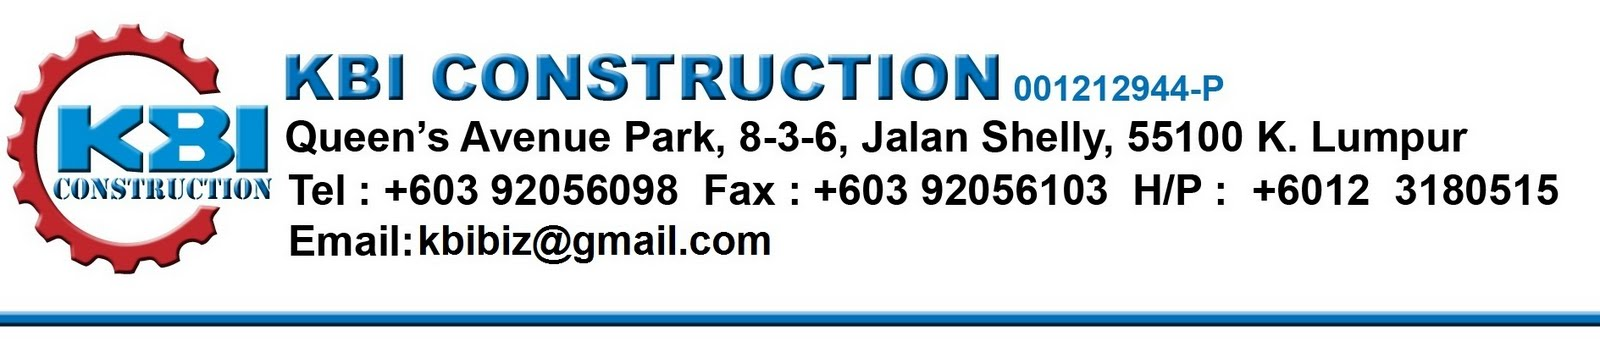 kbi construction